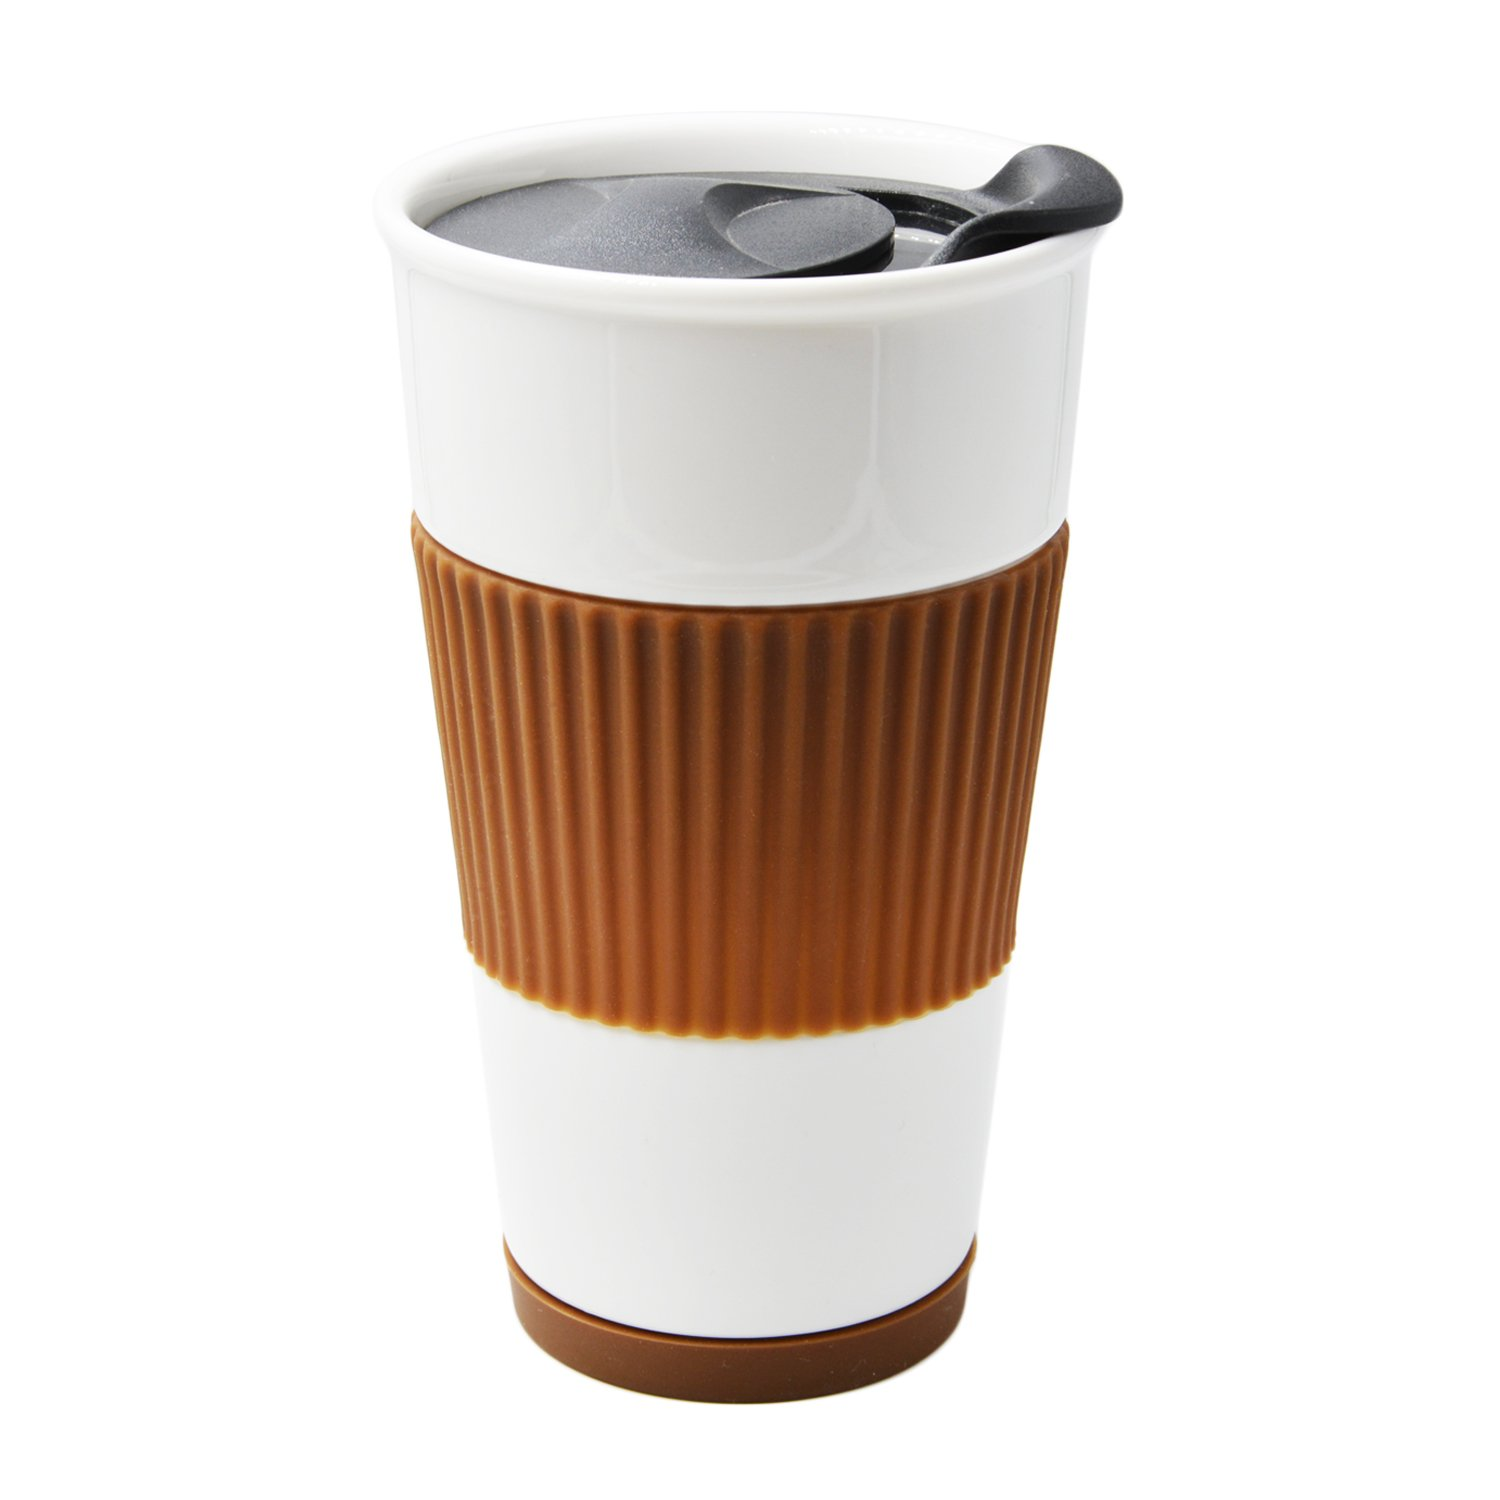 UDMG Double Wall Insulated Travel Coffee Ceramic Cup with Slider Lid, Silicone Sleeve & Built-In Coaster, 10 fl.oz (Coffee)